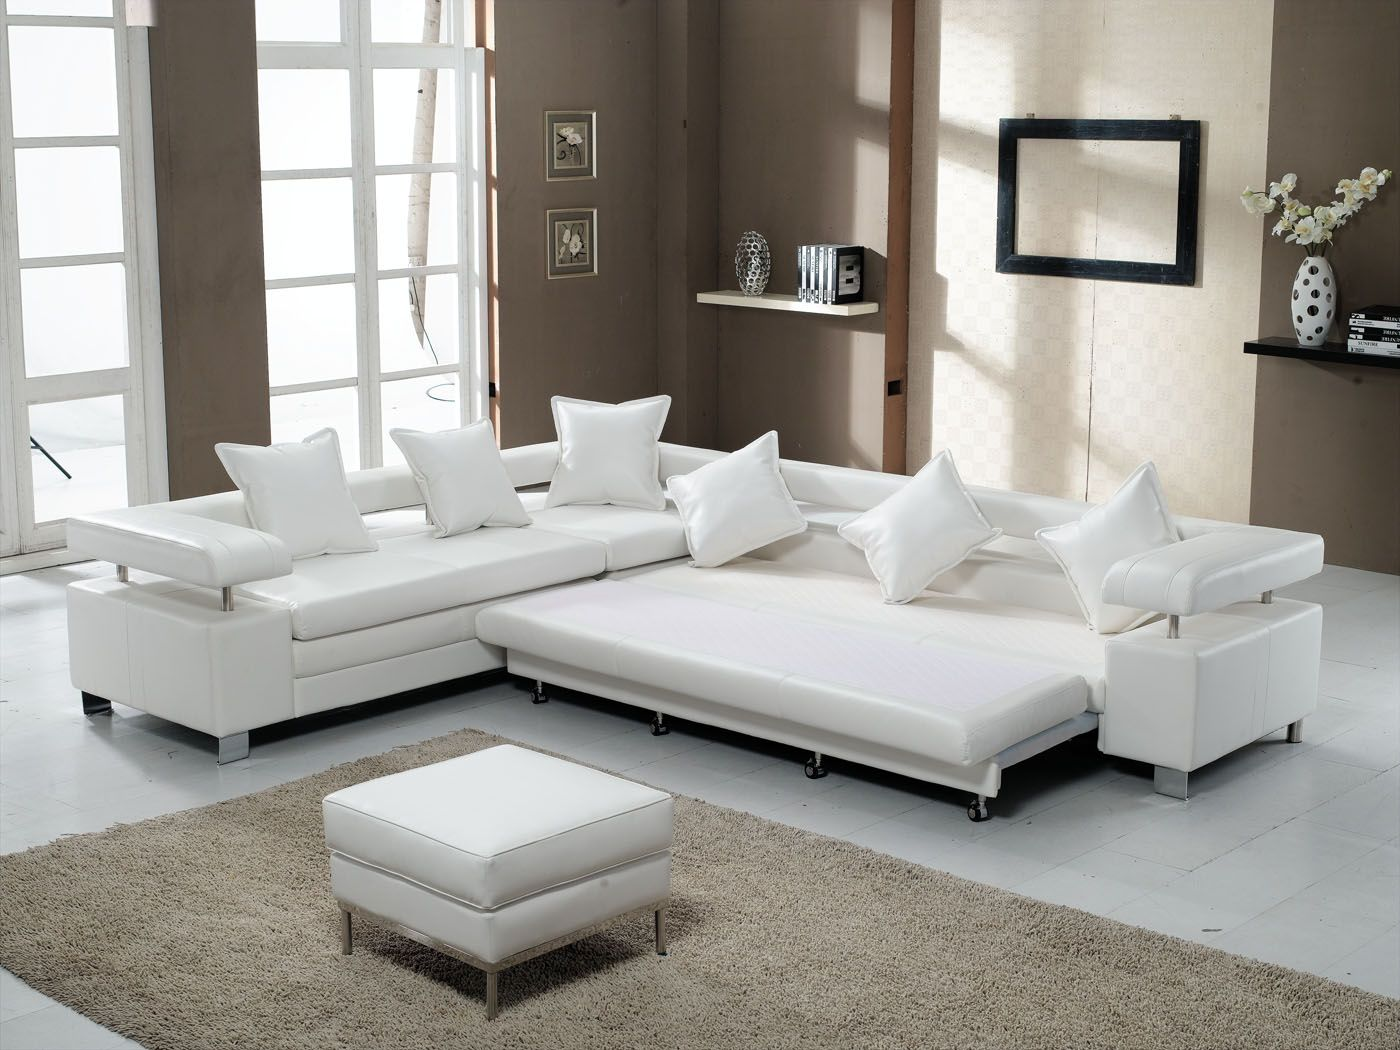 modern sectional sofas - Google Search   Couch, Sofa, Sectionals ...